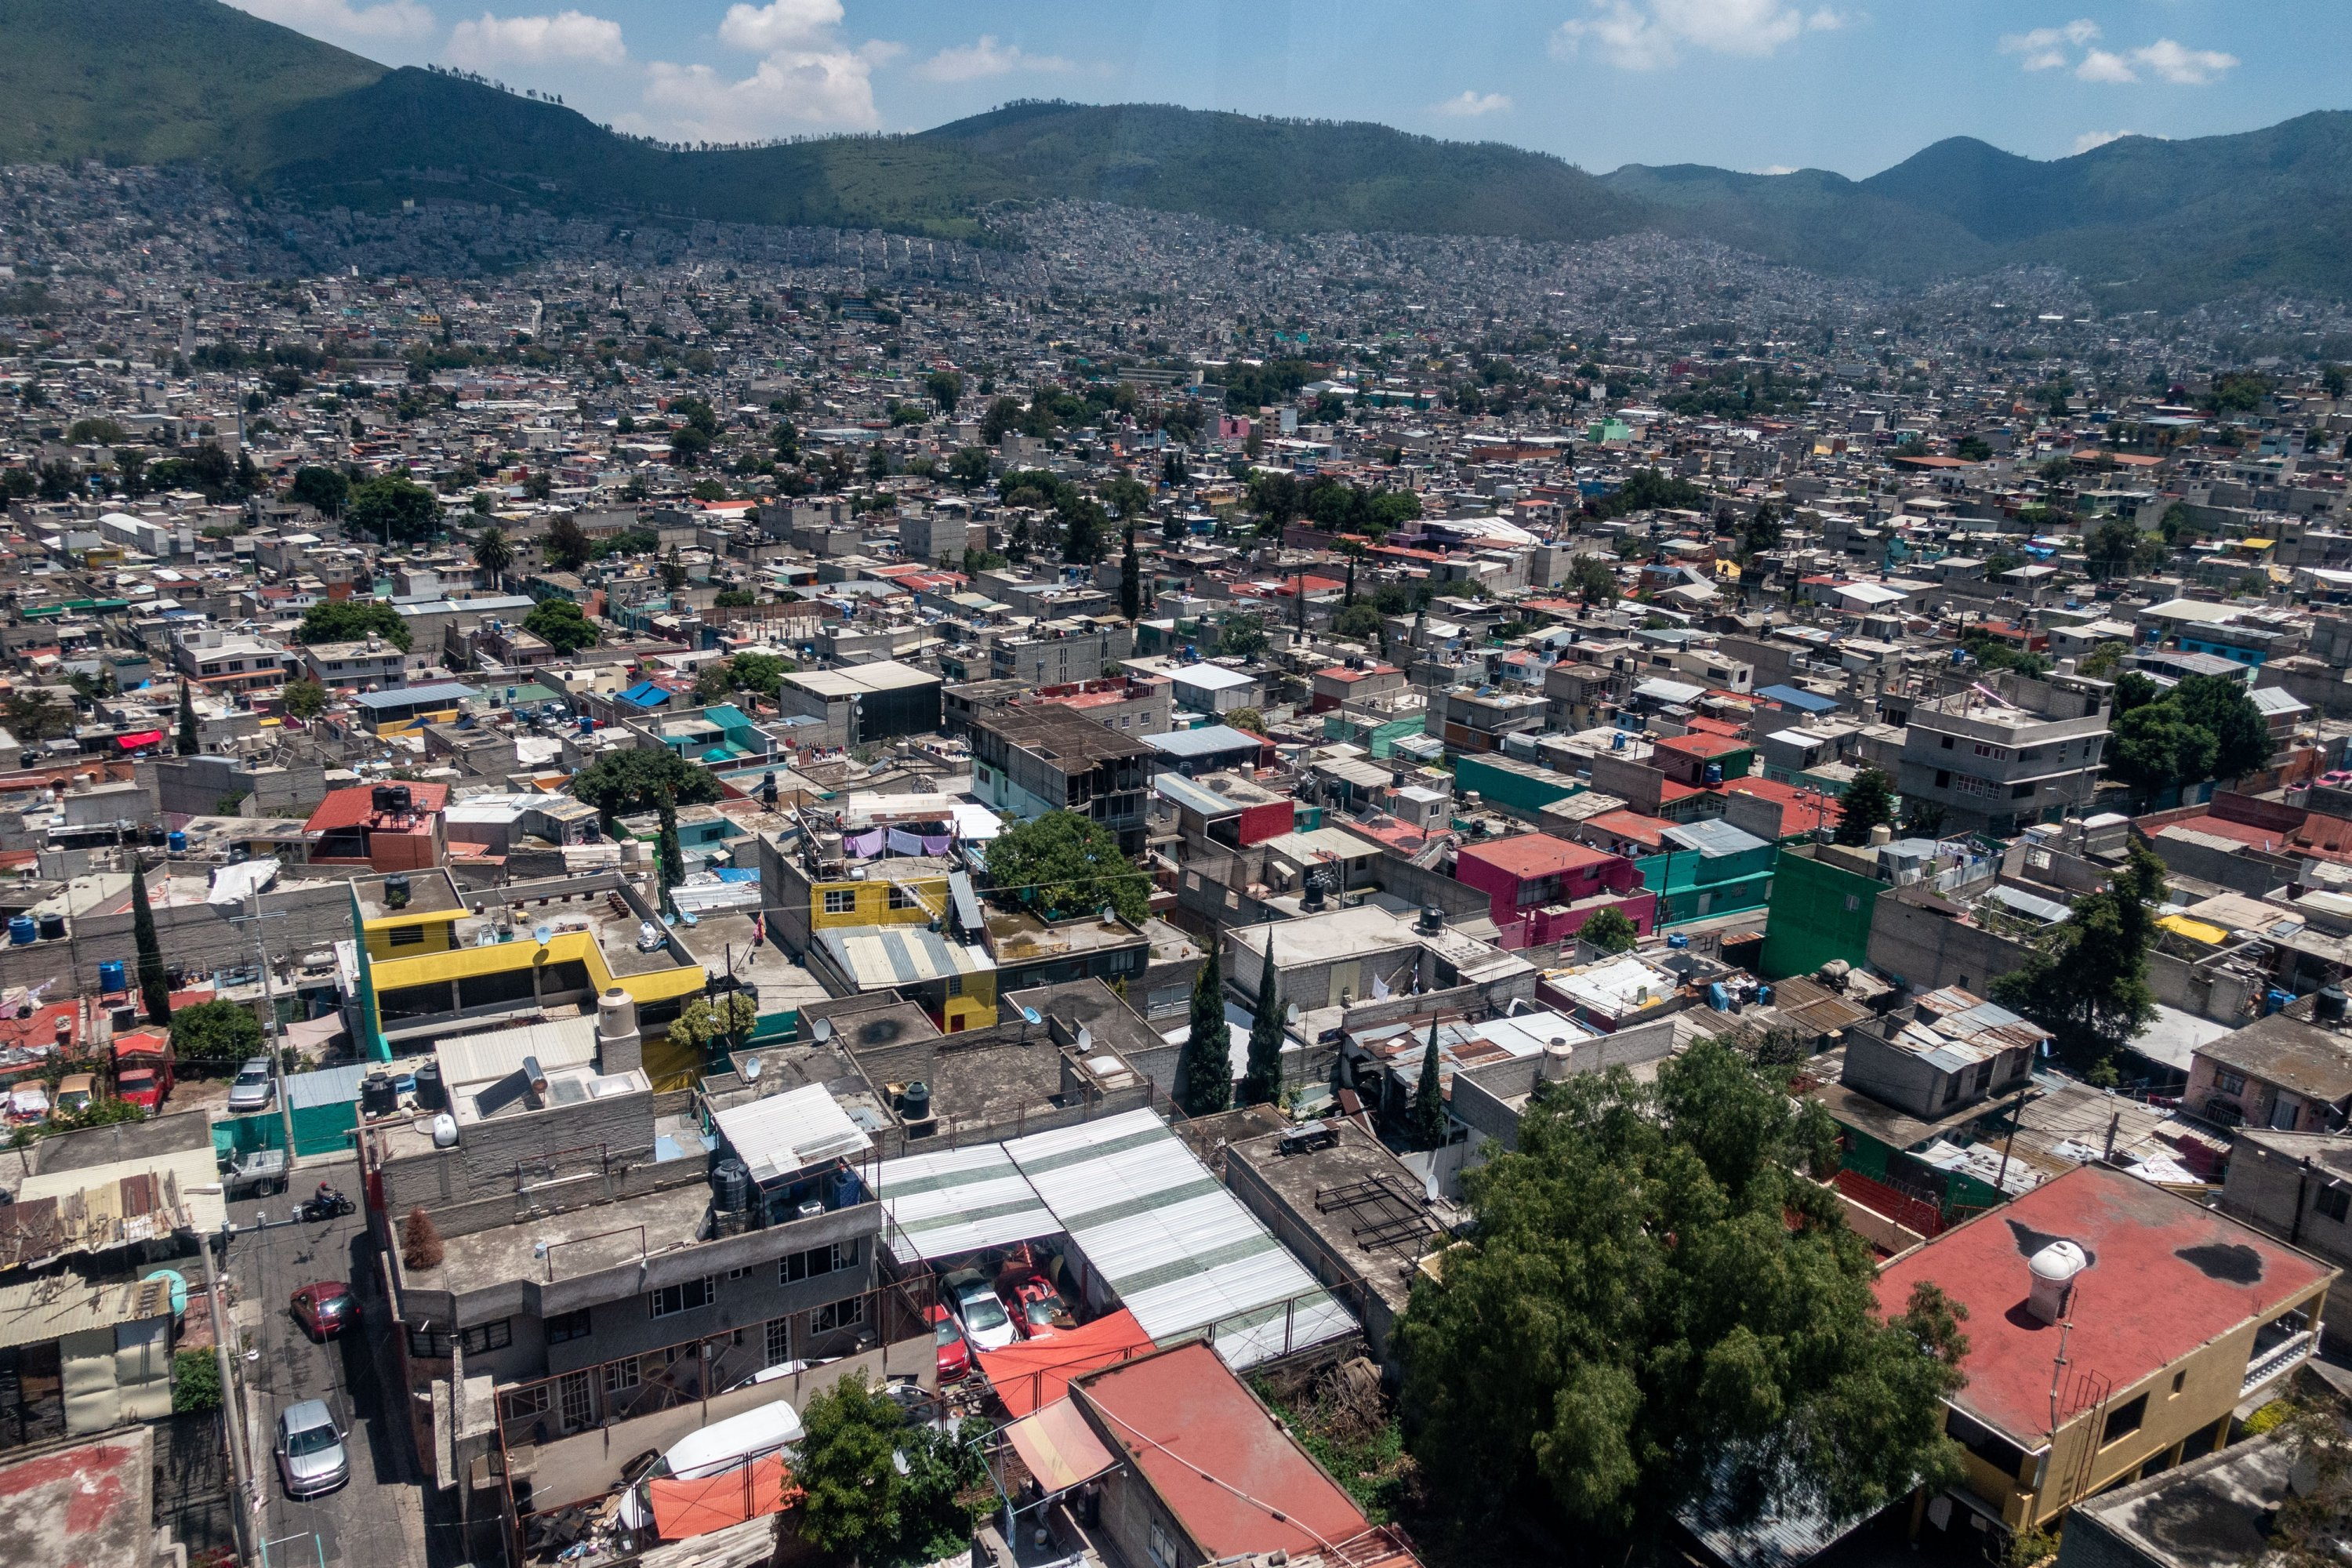 An aerial view of the Gustavo A. Madero neighborhood in Mexico City, Mexico, July 19, 2021. (Photo by Getty Images)